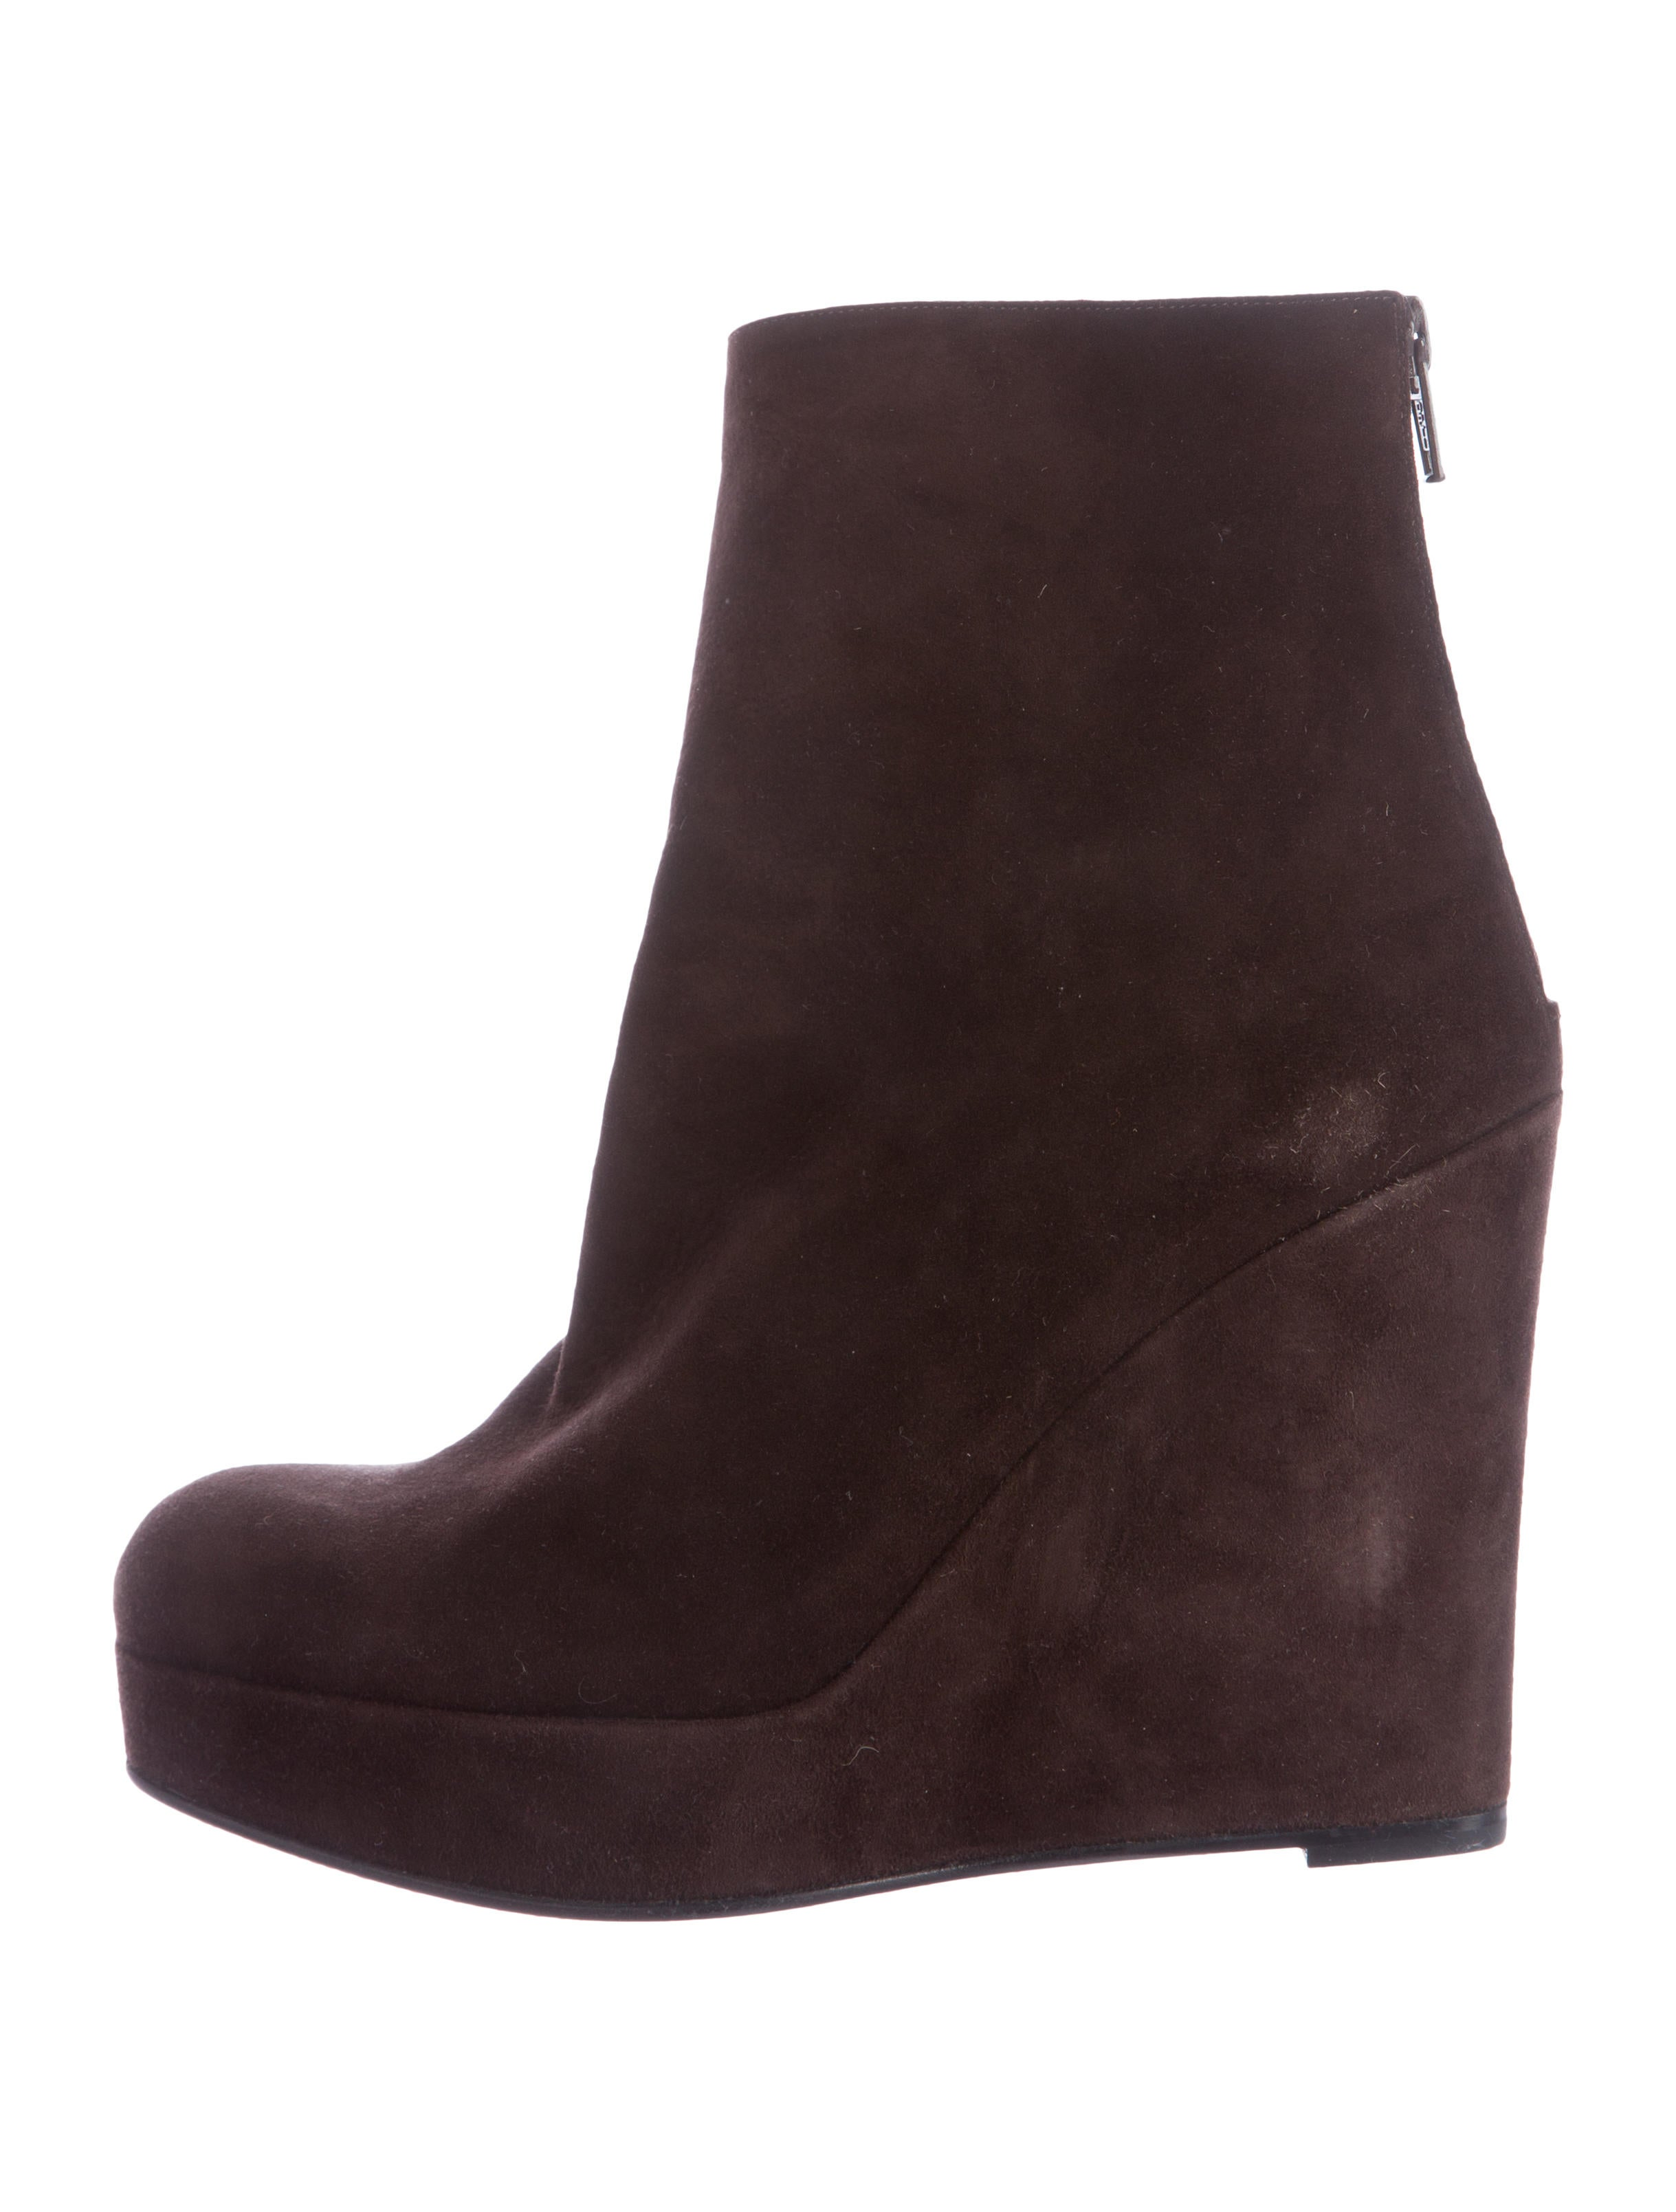 christian louboutin suede wedge ankle boots shoes